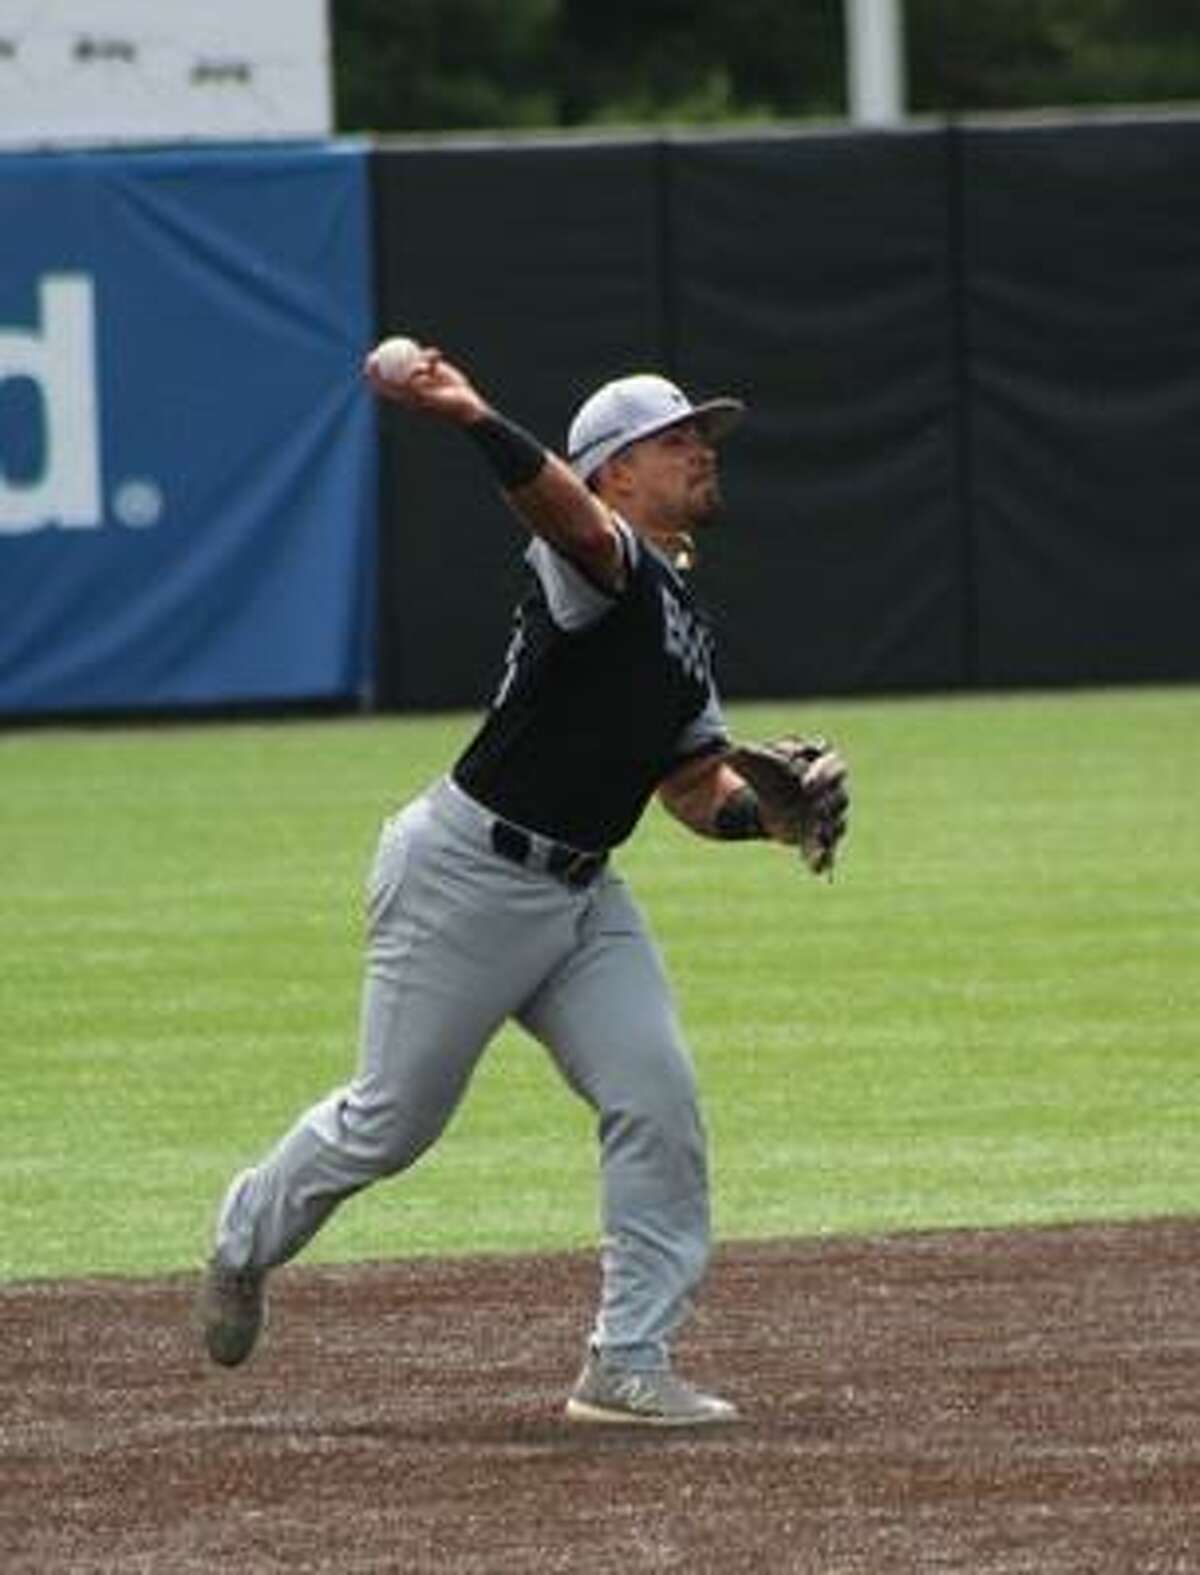 Sergio Macias recorded a .909 fielding percentage at shortstop and led Central Methodist in batting average, hits, doubles and RBIs.